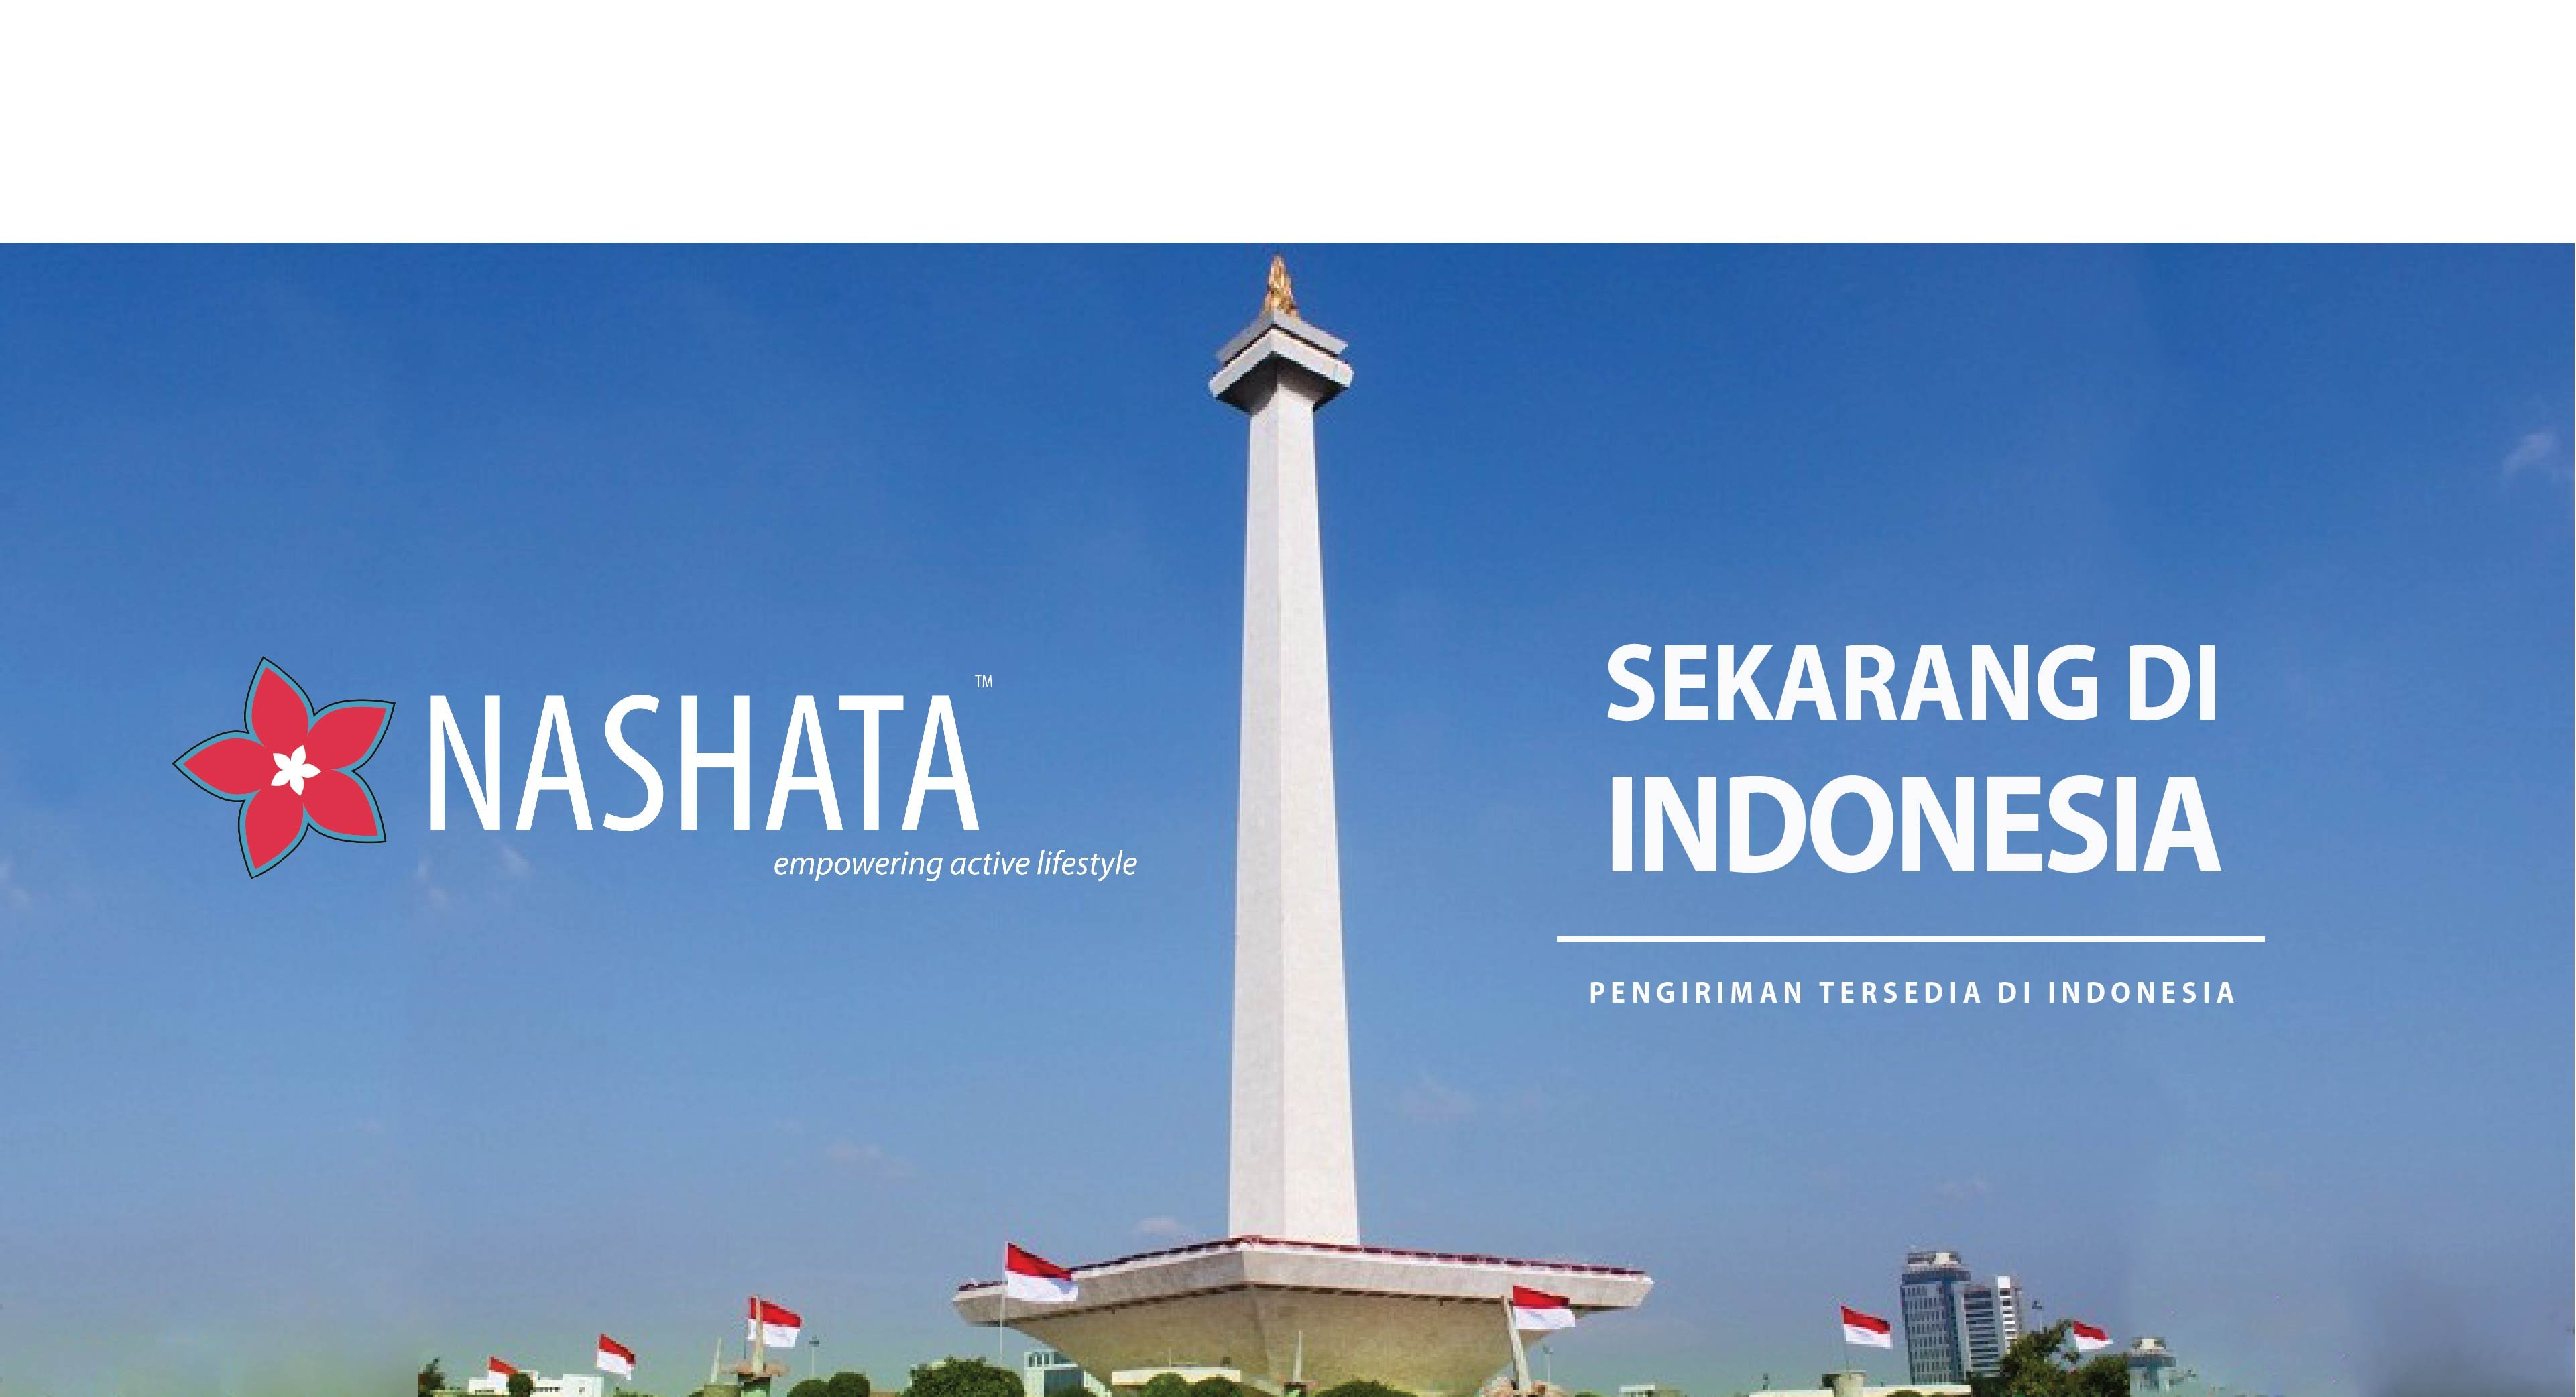 Now in Indonesia!